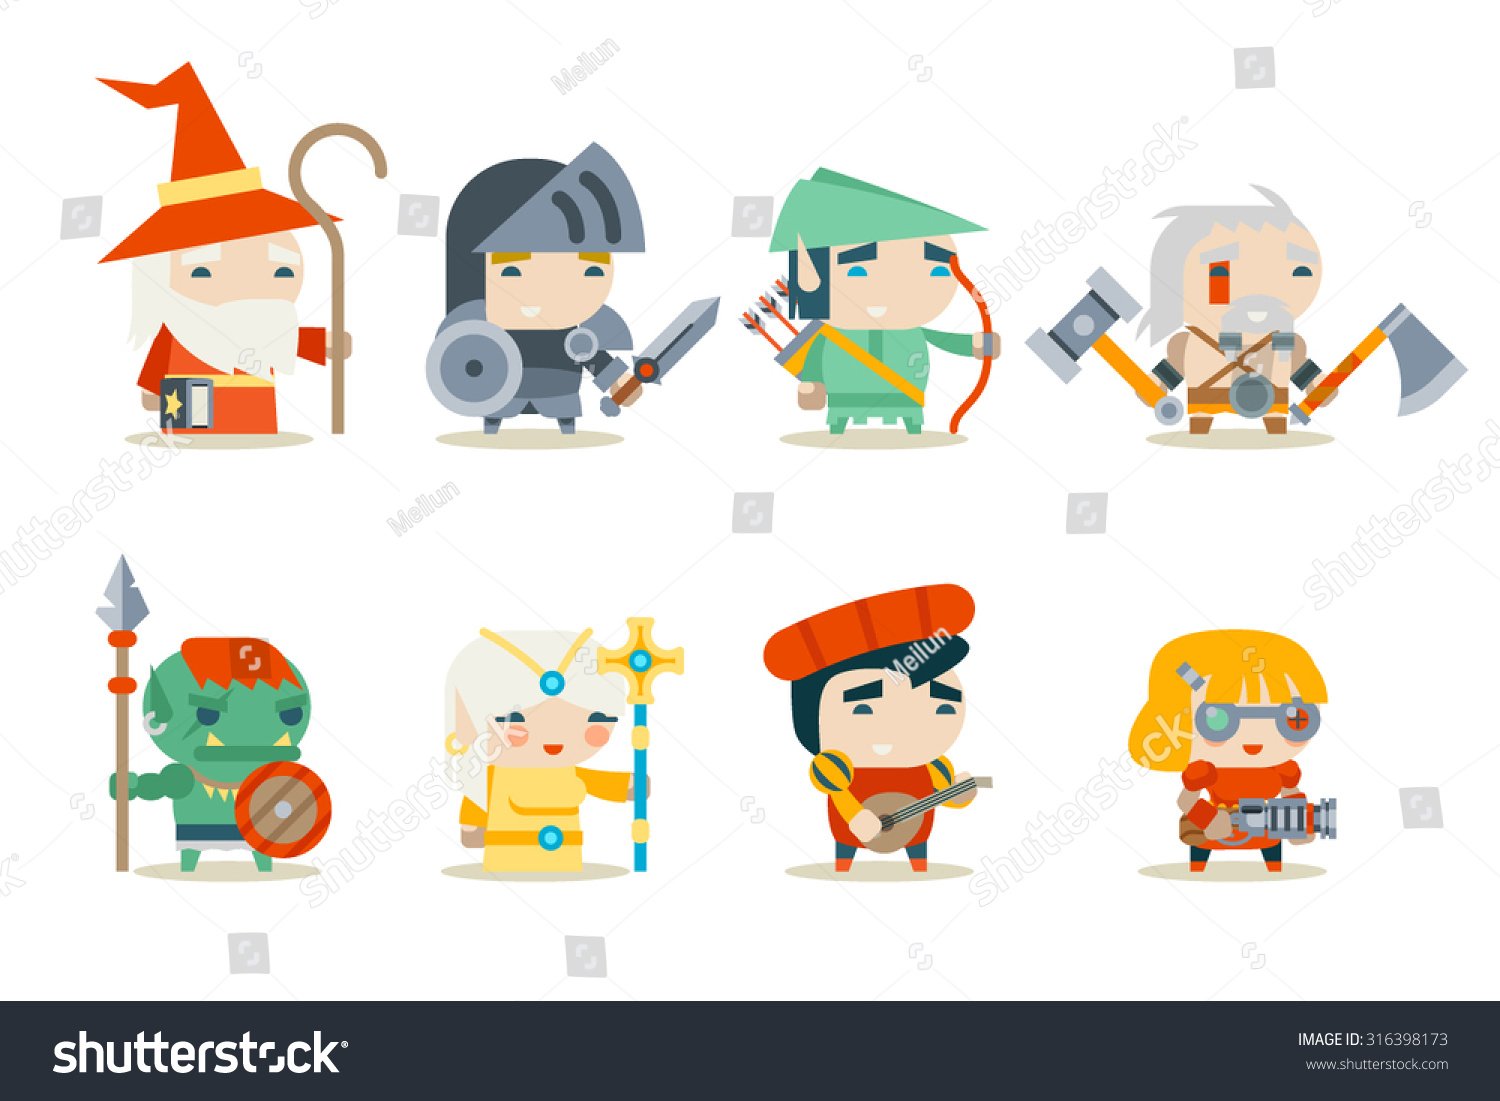 Vector Character Design Illustrator : Fantasy rpg game character icons set stock vector